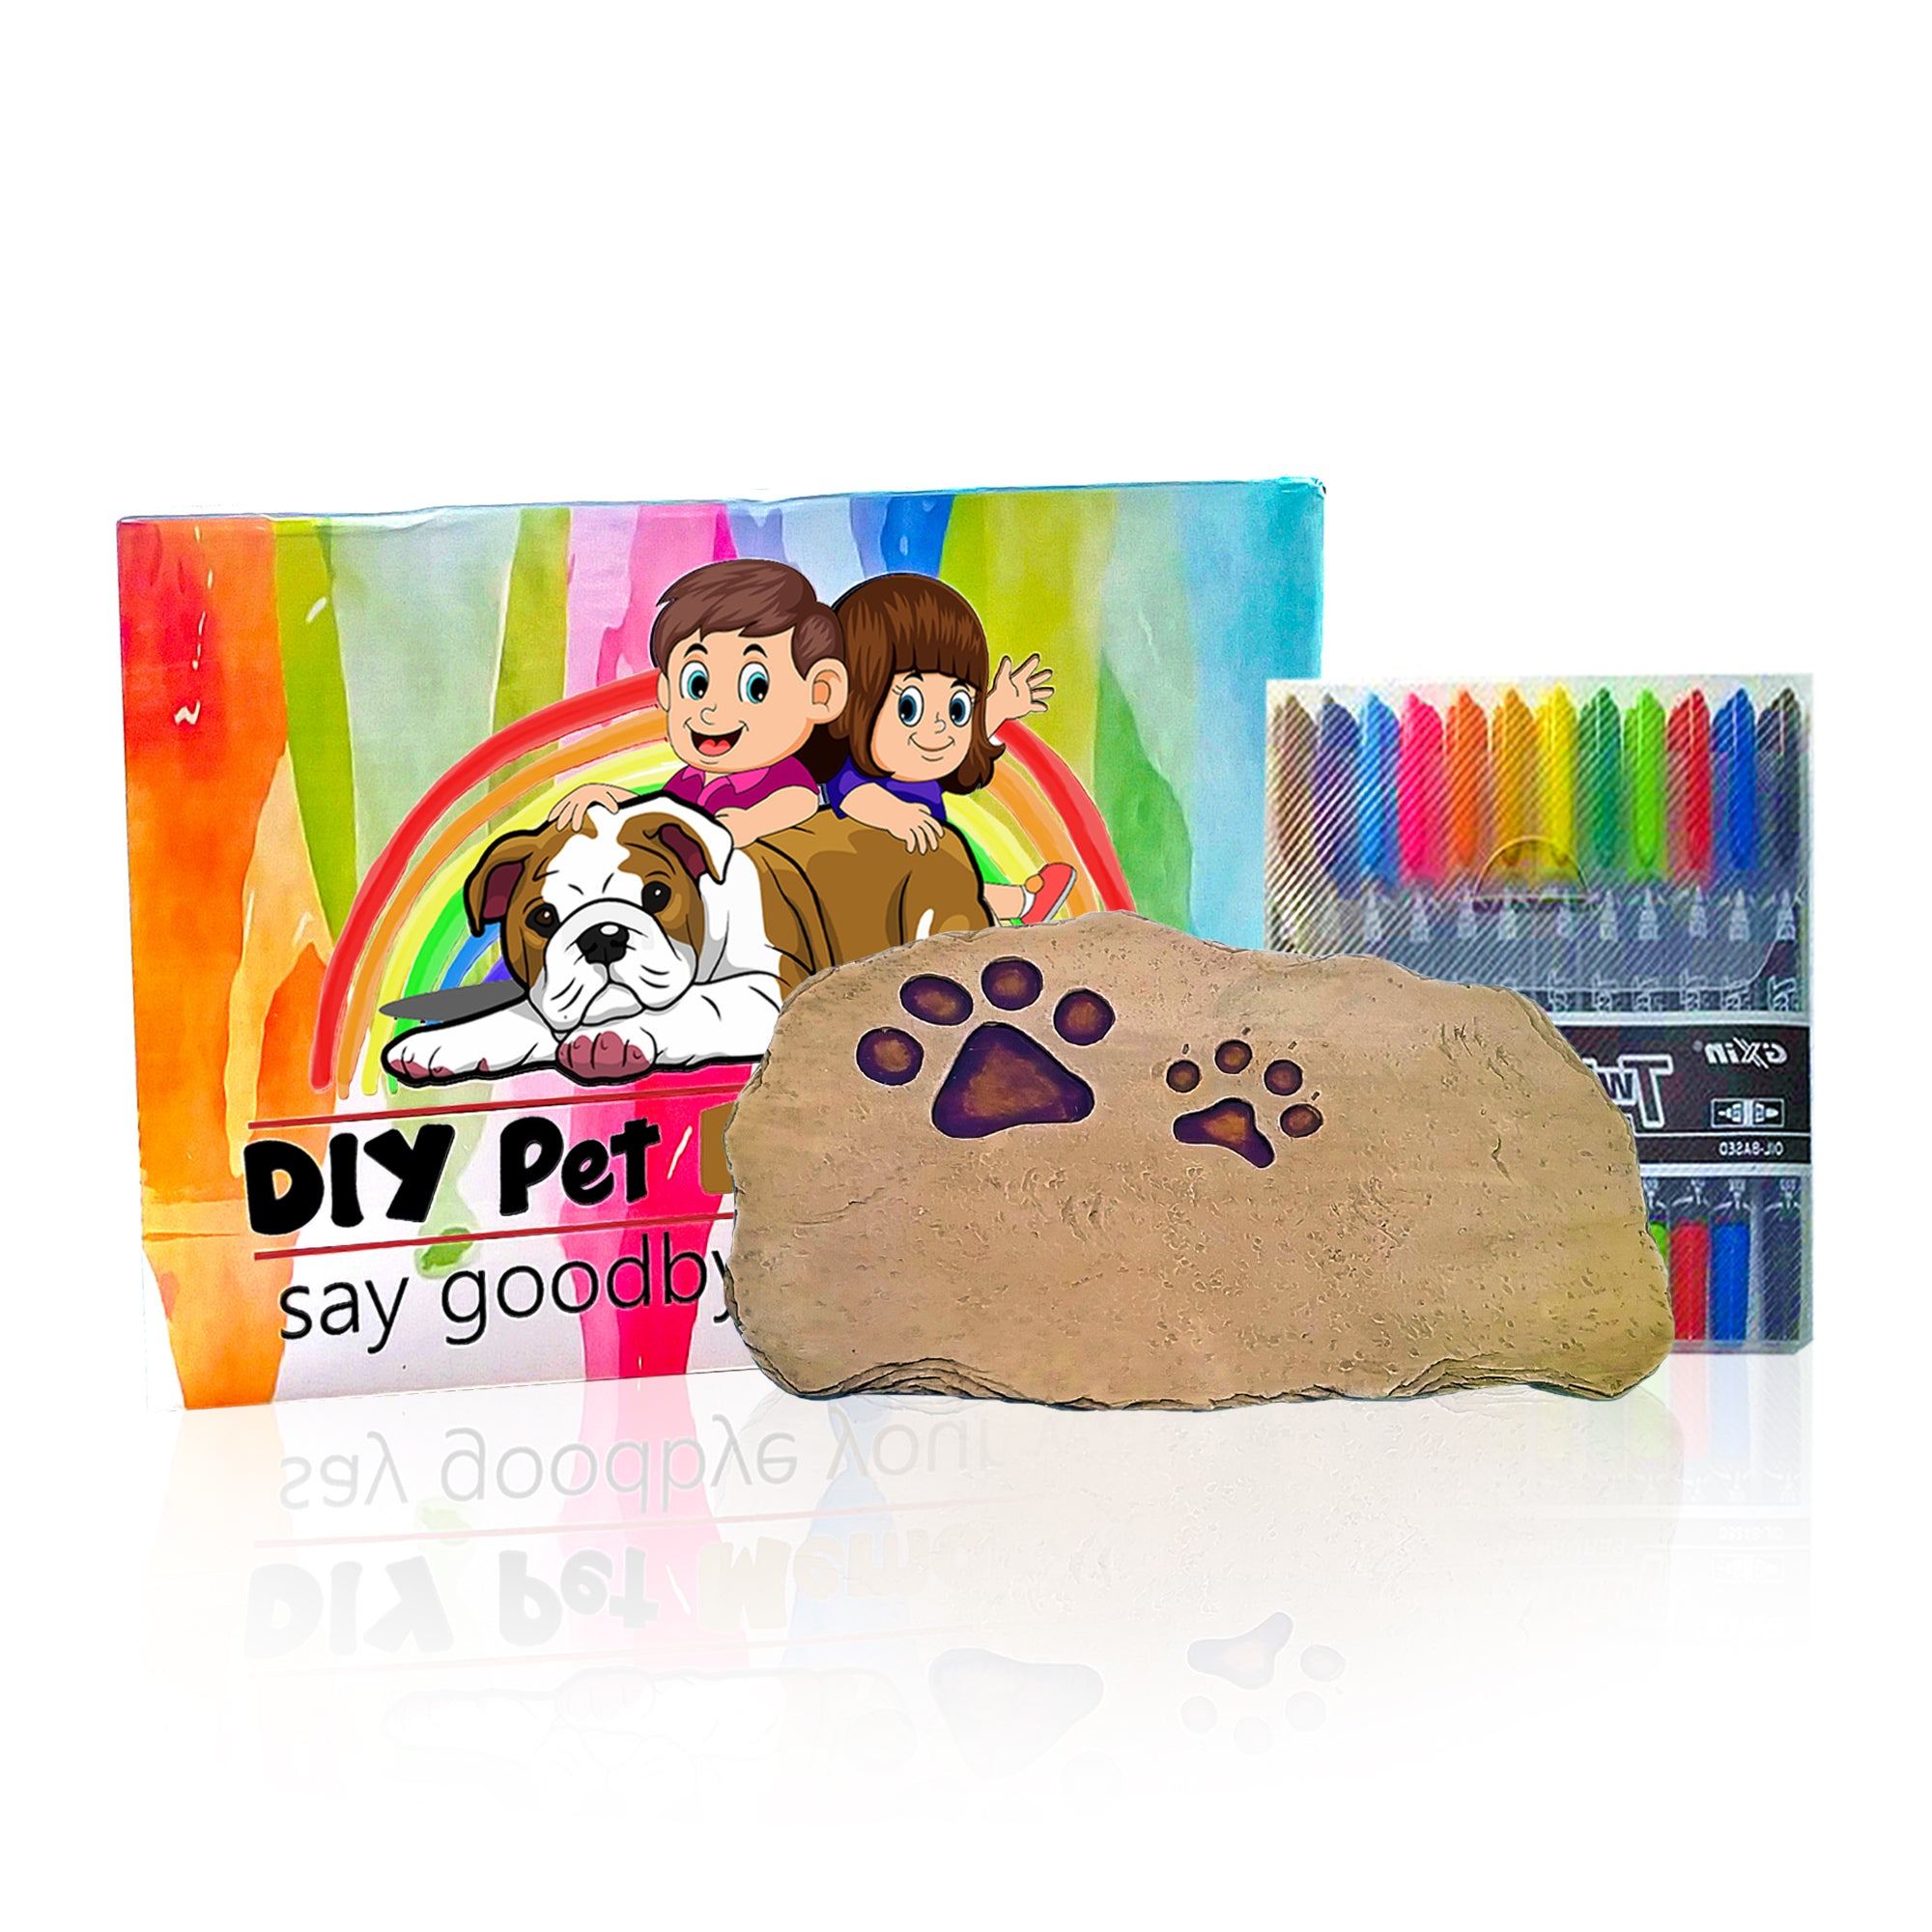 DIY Pet Memorial Say Goodbye Your Way Garden Stone for the Kids, Teens and Adults to Color Draw Own Words From Your Heart To Say Goodbye to Your Loved Pet in a Personalized, Custom and Unique Way